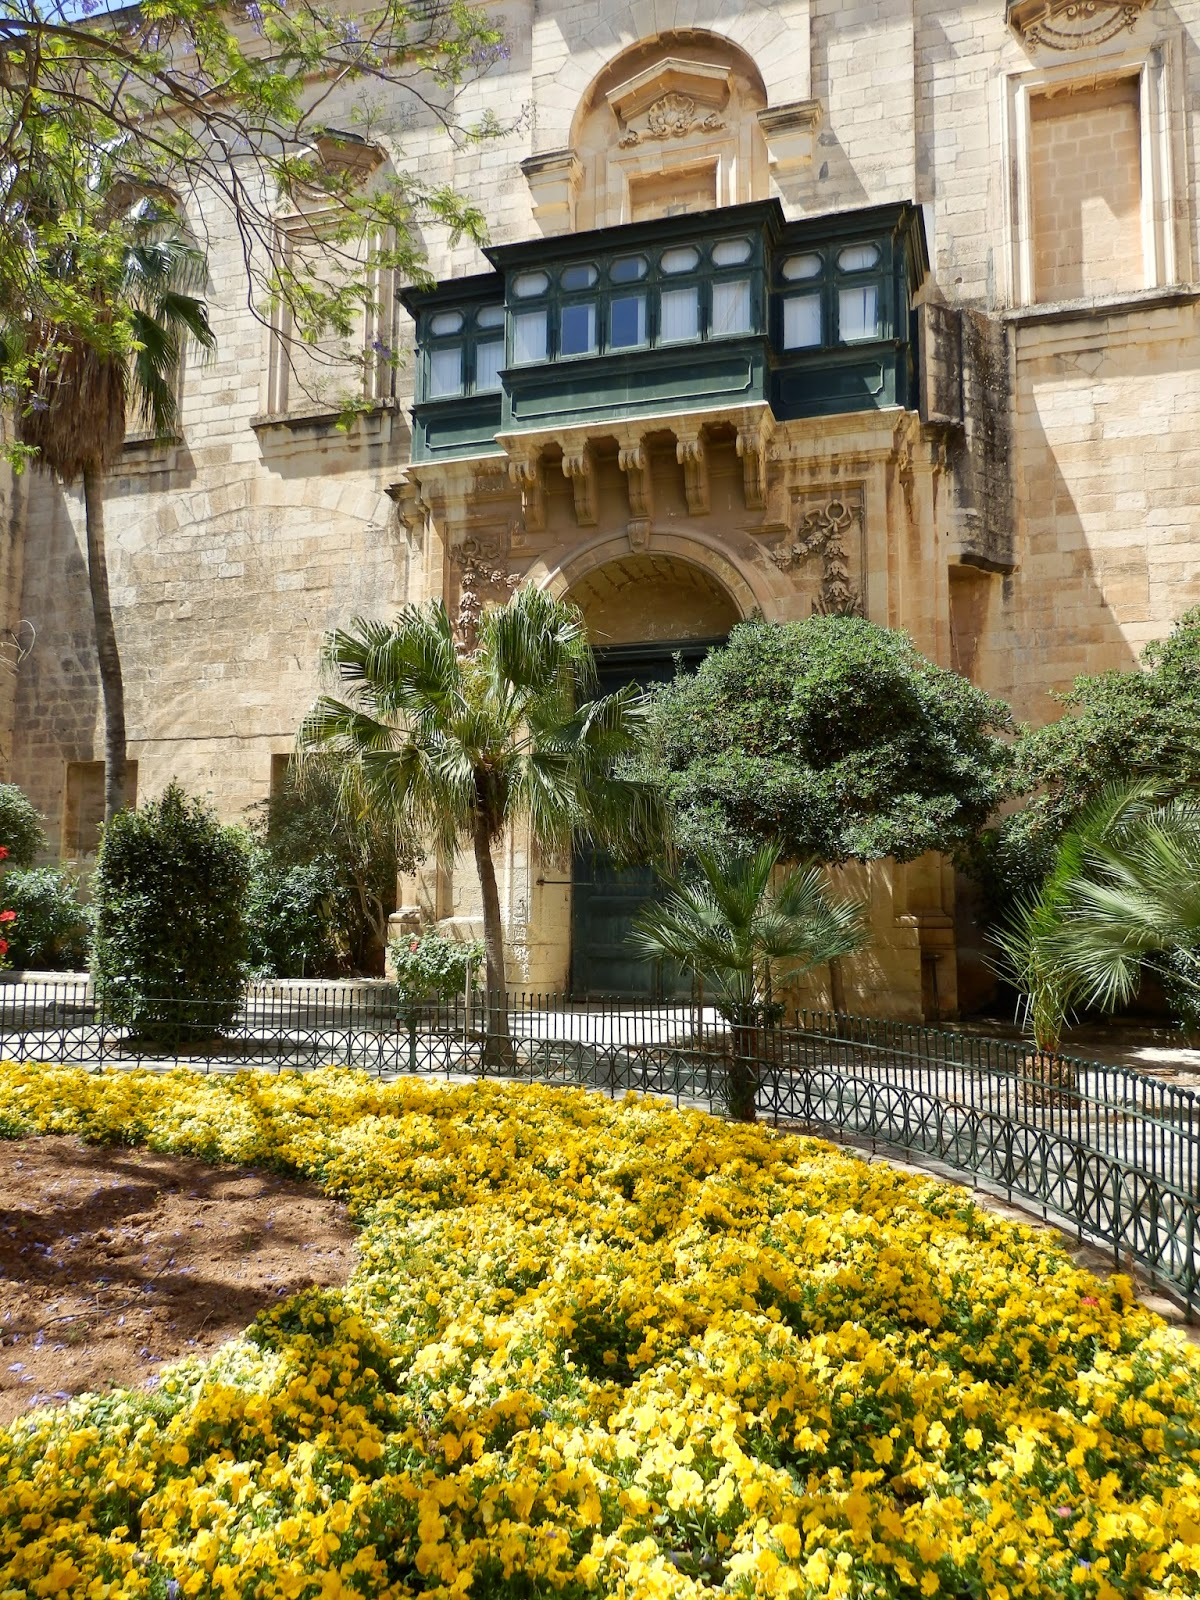 Courtyard of the Palace in Valletta Malta